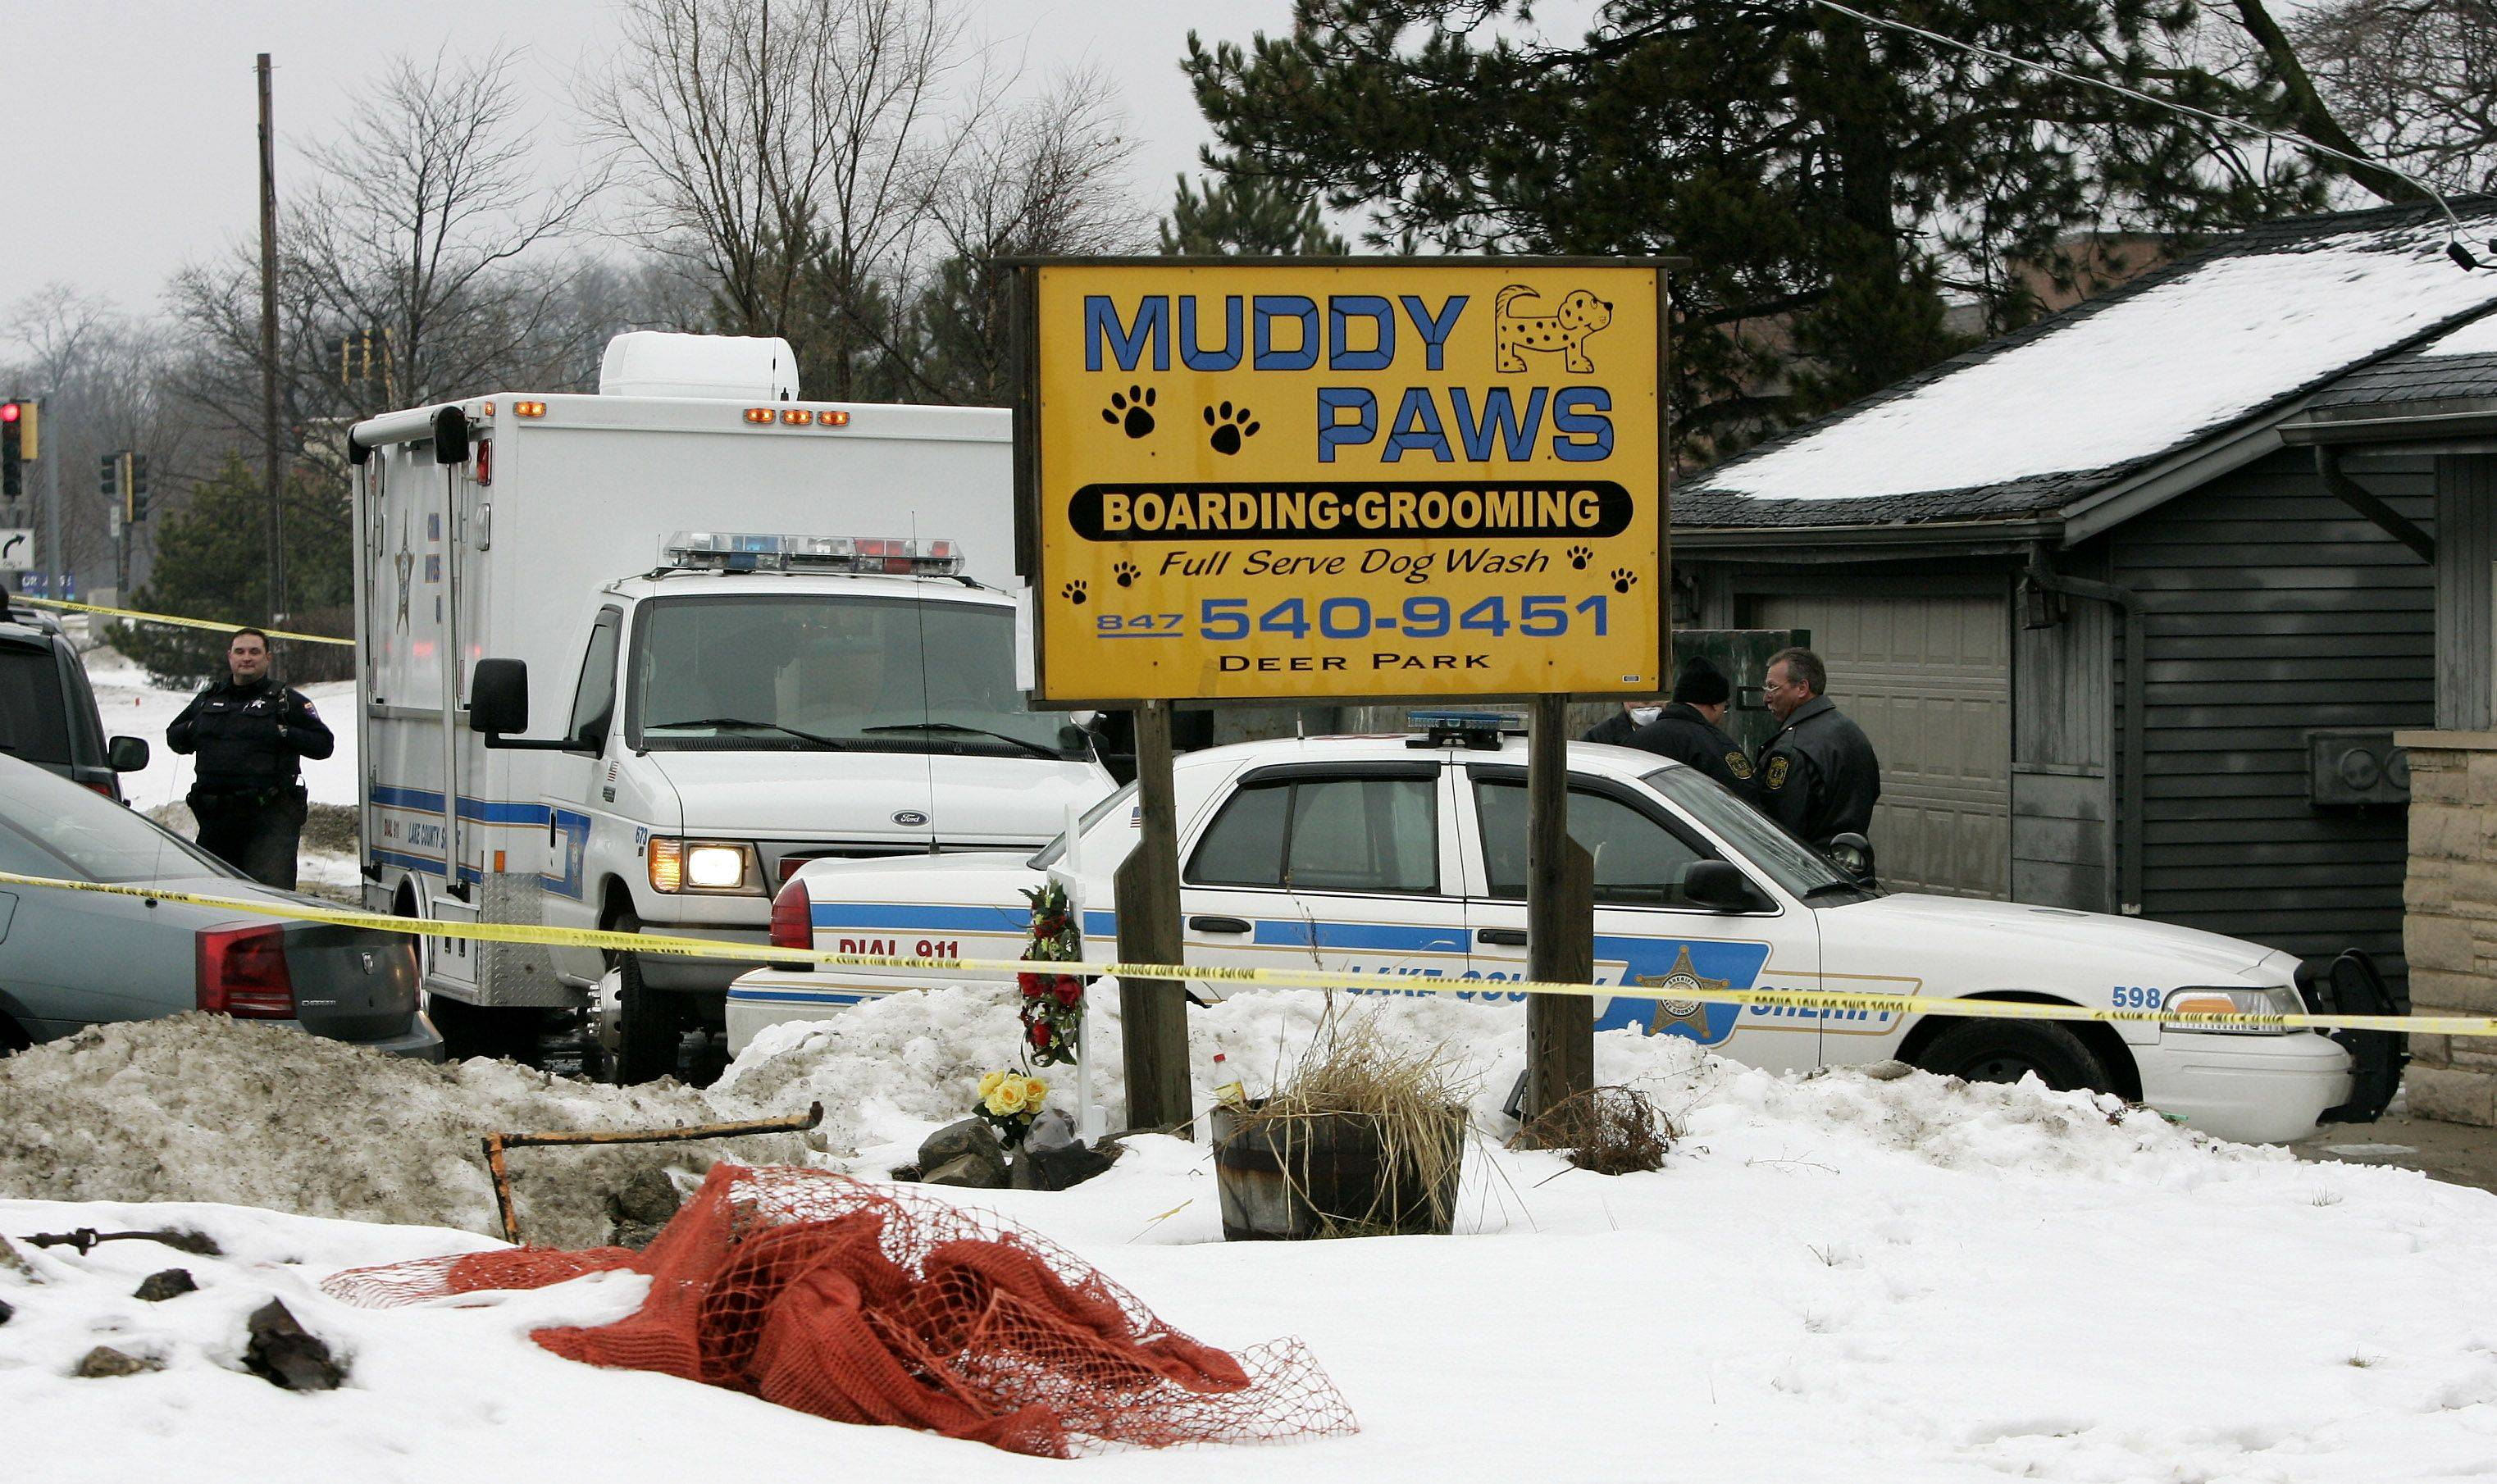 Lake County sheriff's investigators Kildeer police and other agencies investigate the scene last week at Muddy Paws Dog Rescue to collect more evidence of animal cruelty and deaths in the case against Diane Eldrup the former operator of the shelter.